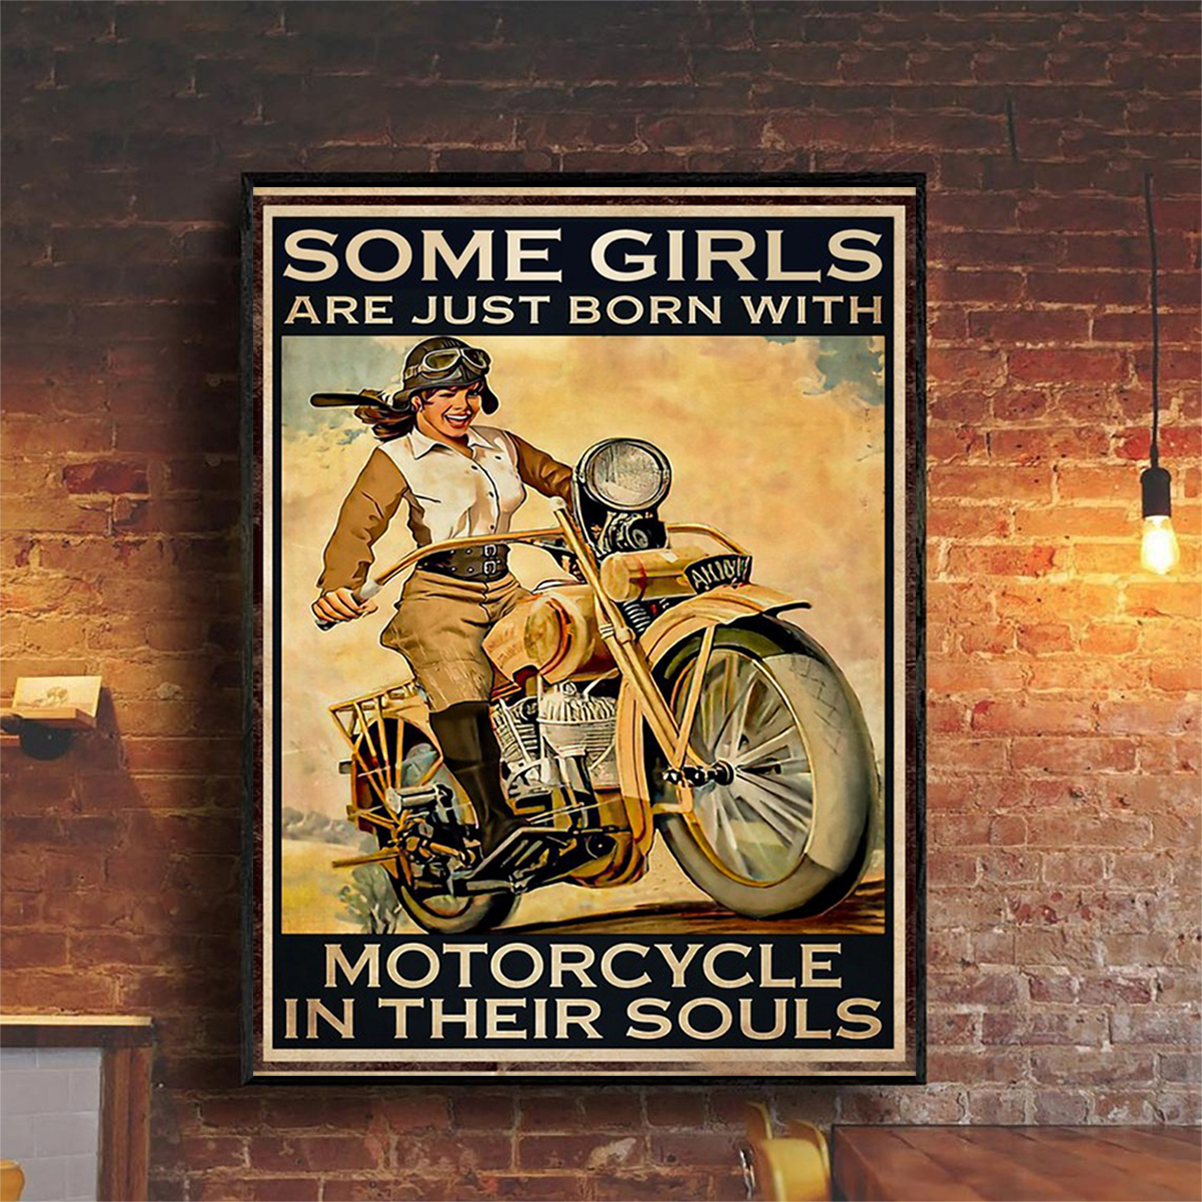 Some girls are just born with motorcycle in their souls poster A2